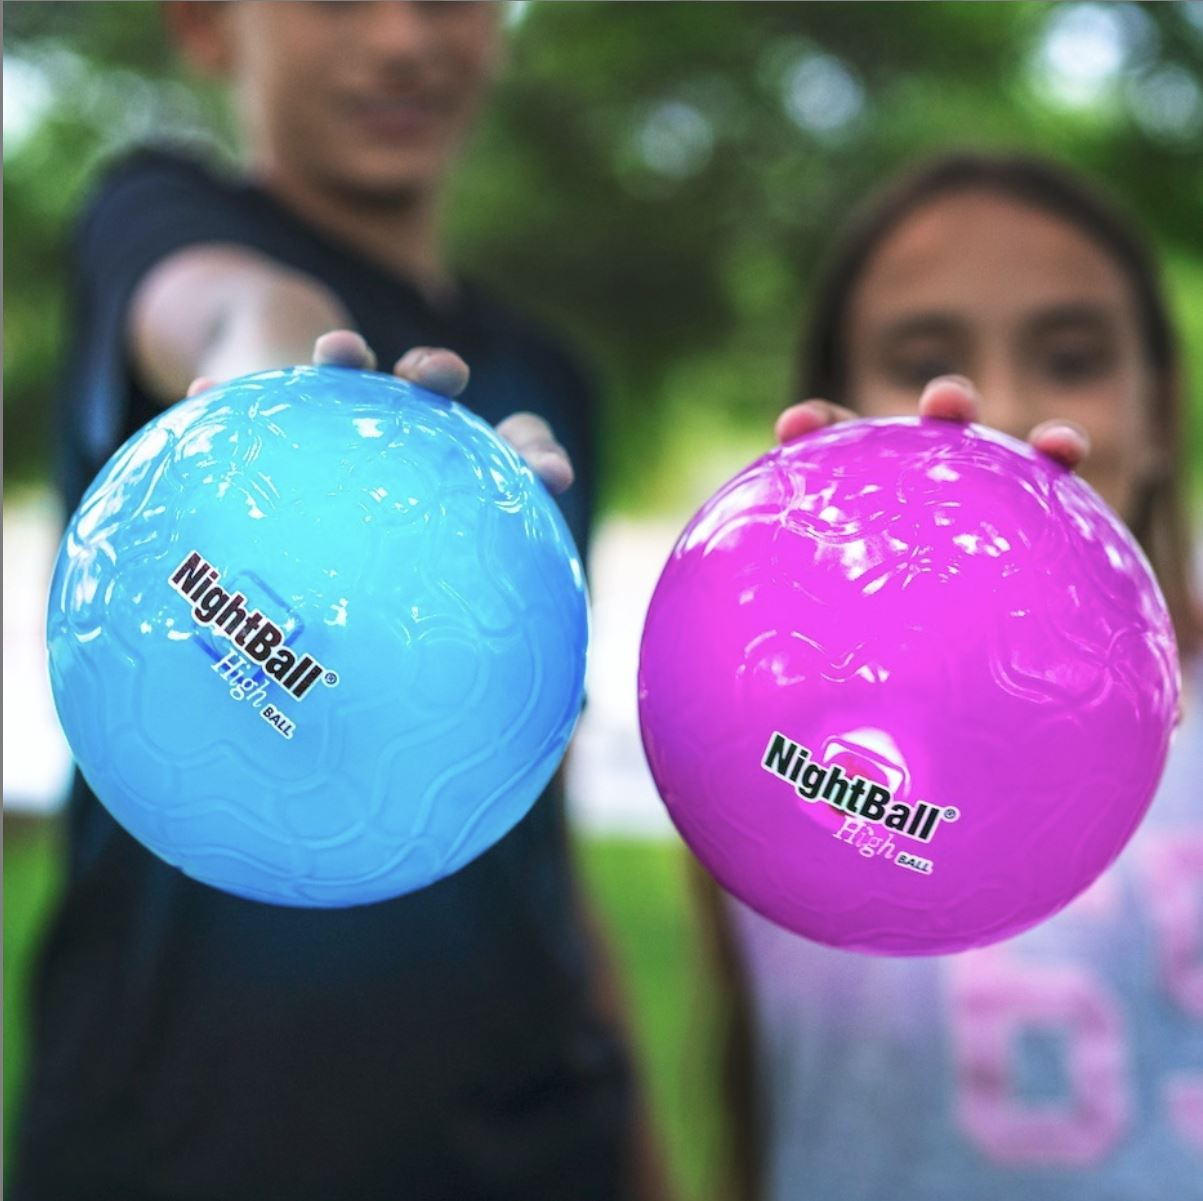 Tangle NightBall High Ball - LED Light Up High Bounce Ball!